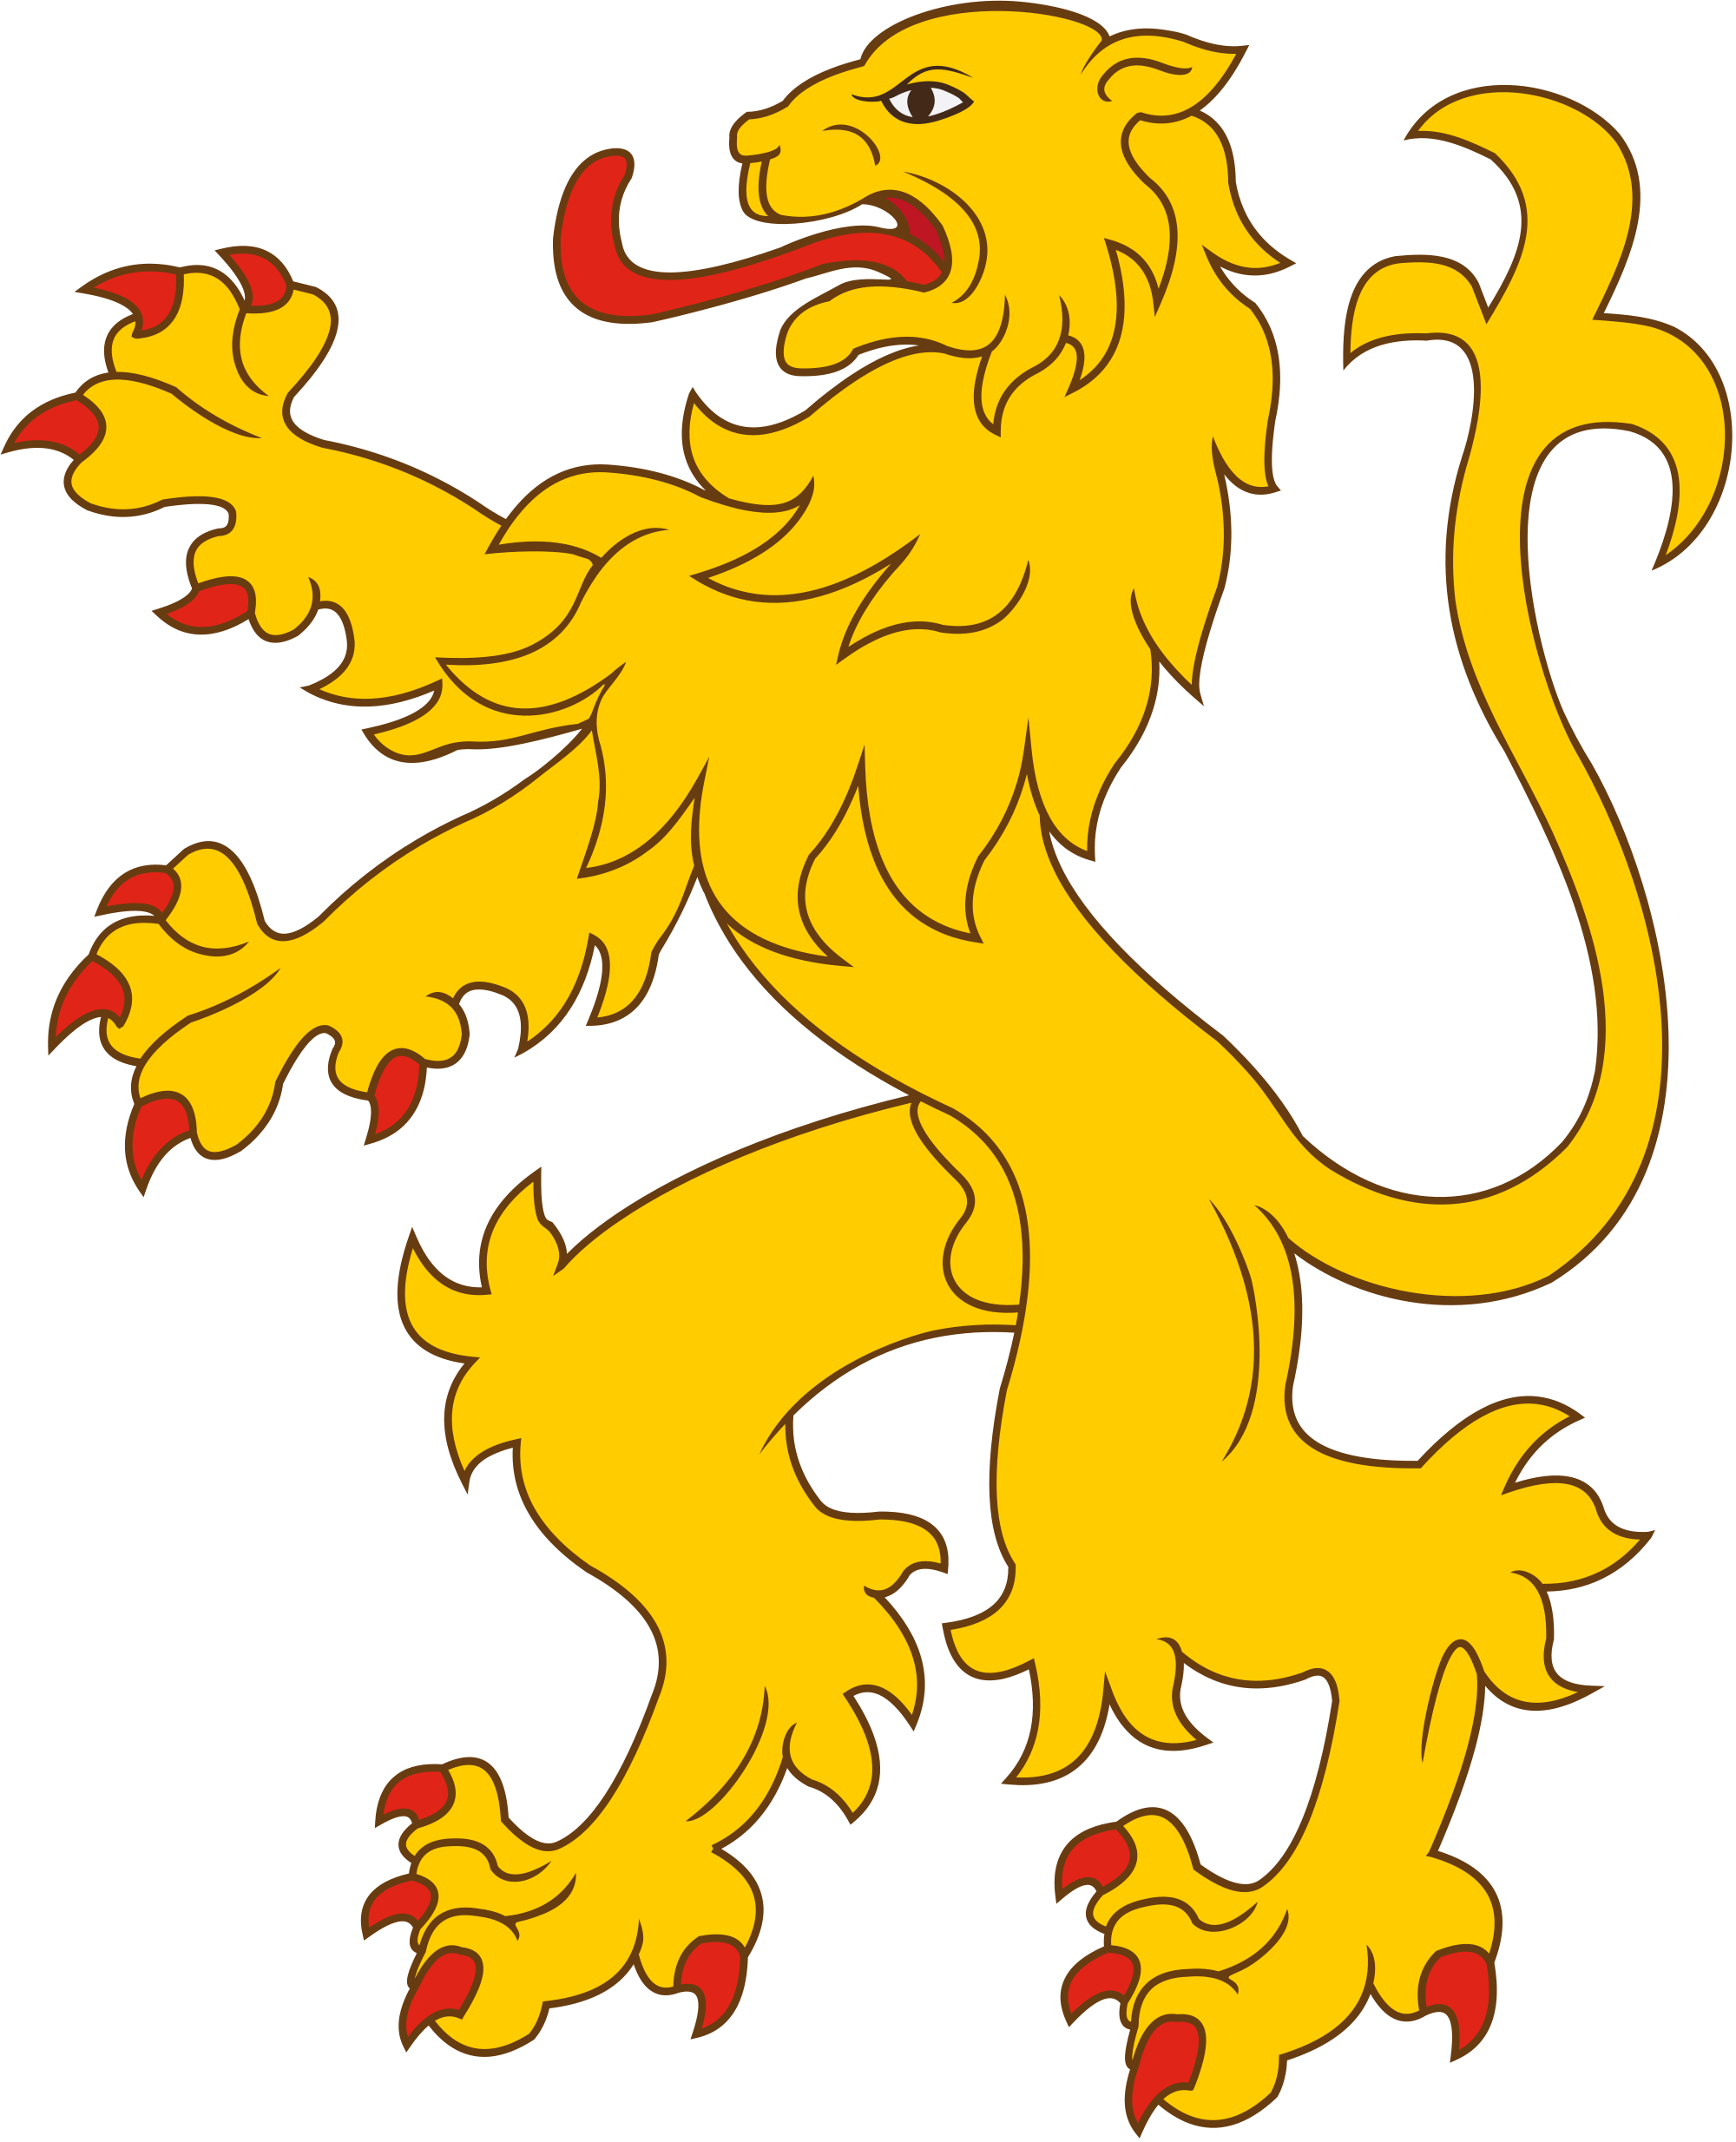 Coat of arms lion png. File heraldic svg wikimedia